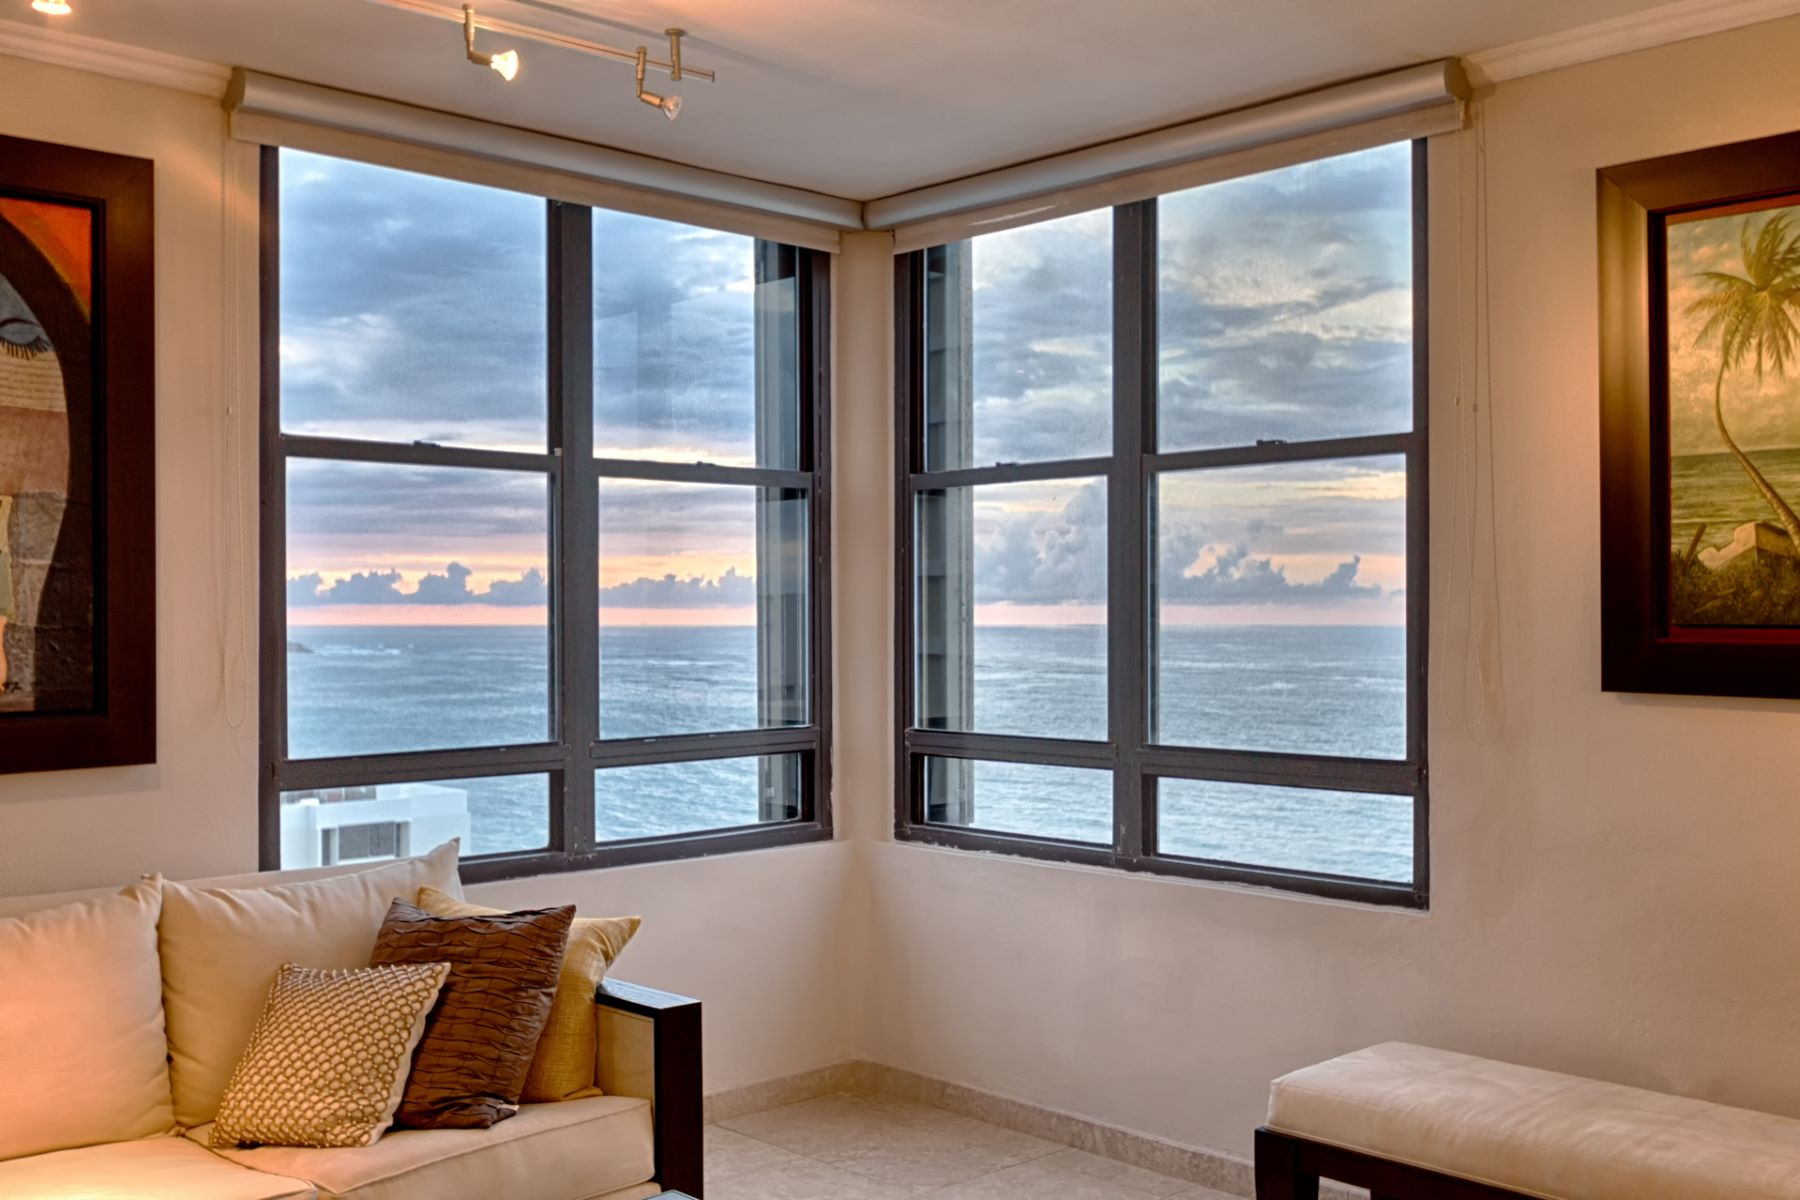 Additional photo for property listing at 14th Floor At Candina Sea Tower Candina Sea Tower, 3 Candina Street apt 1401 San Juan, Puerto Rico 00907 Пуэрто-Рико